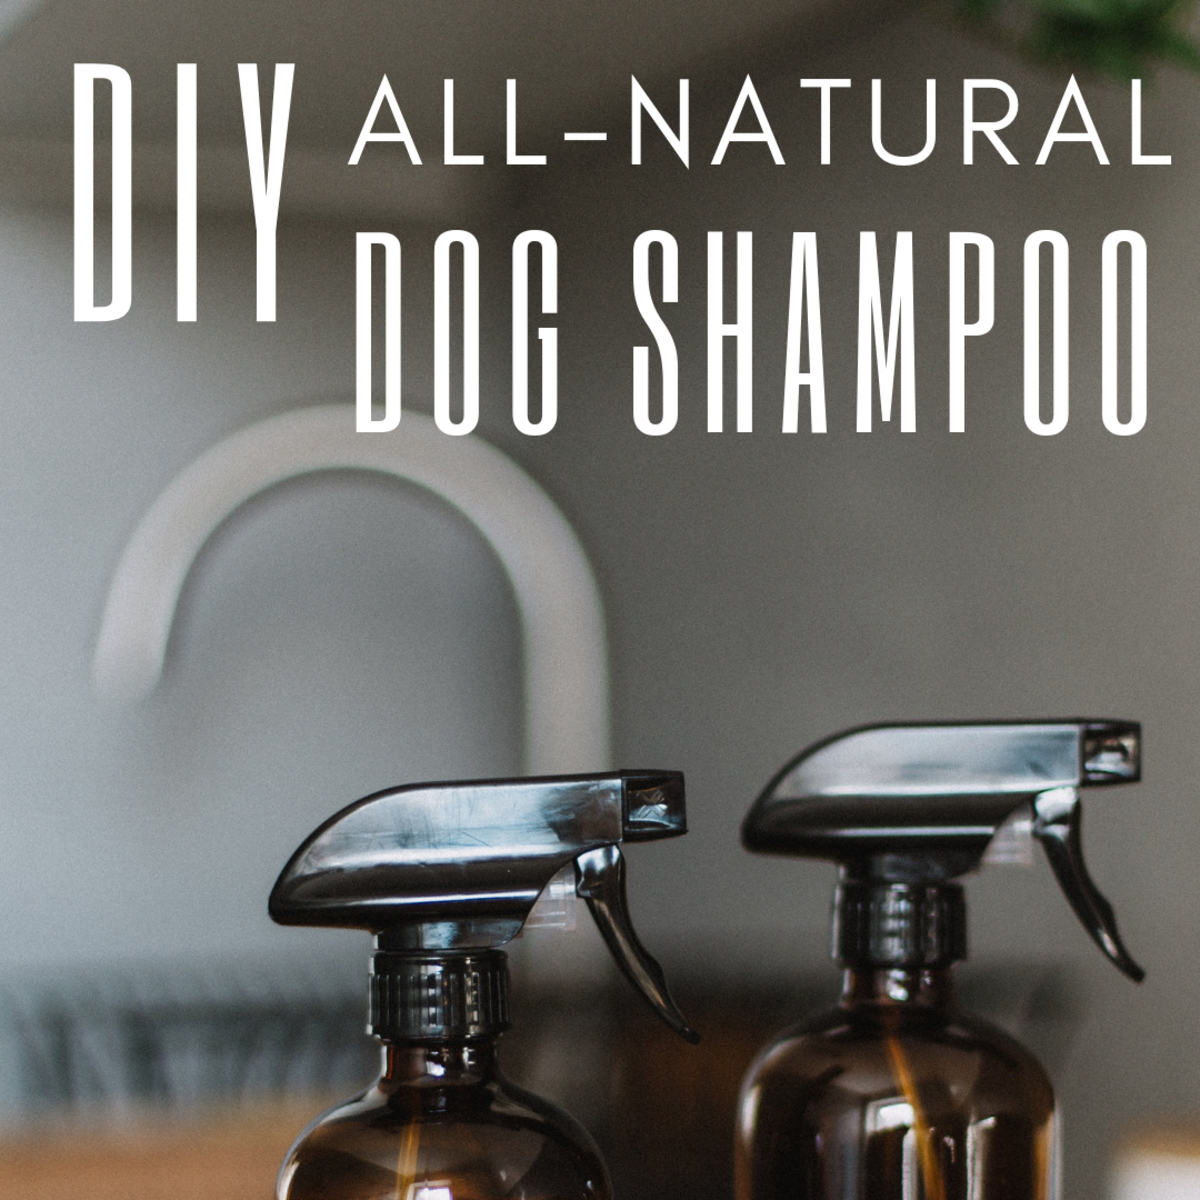 DIY Dog Shampoo Recipe